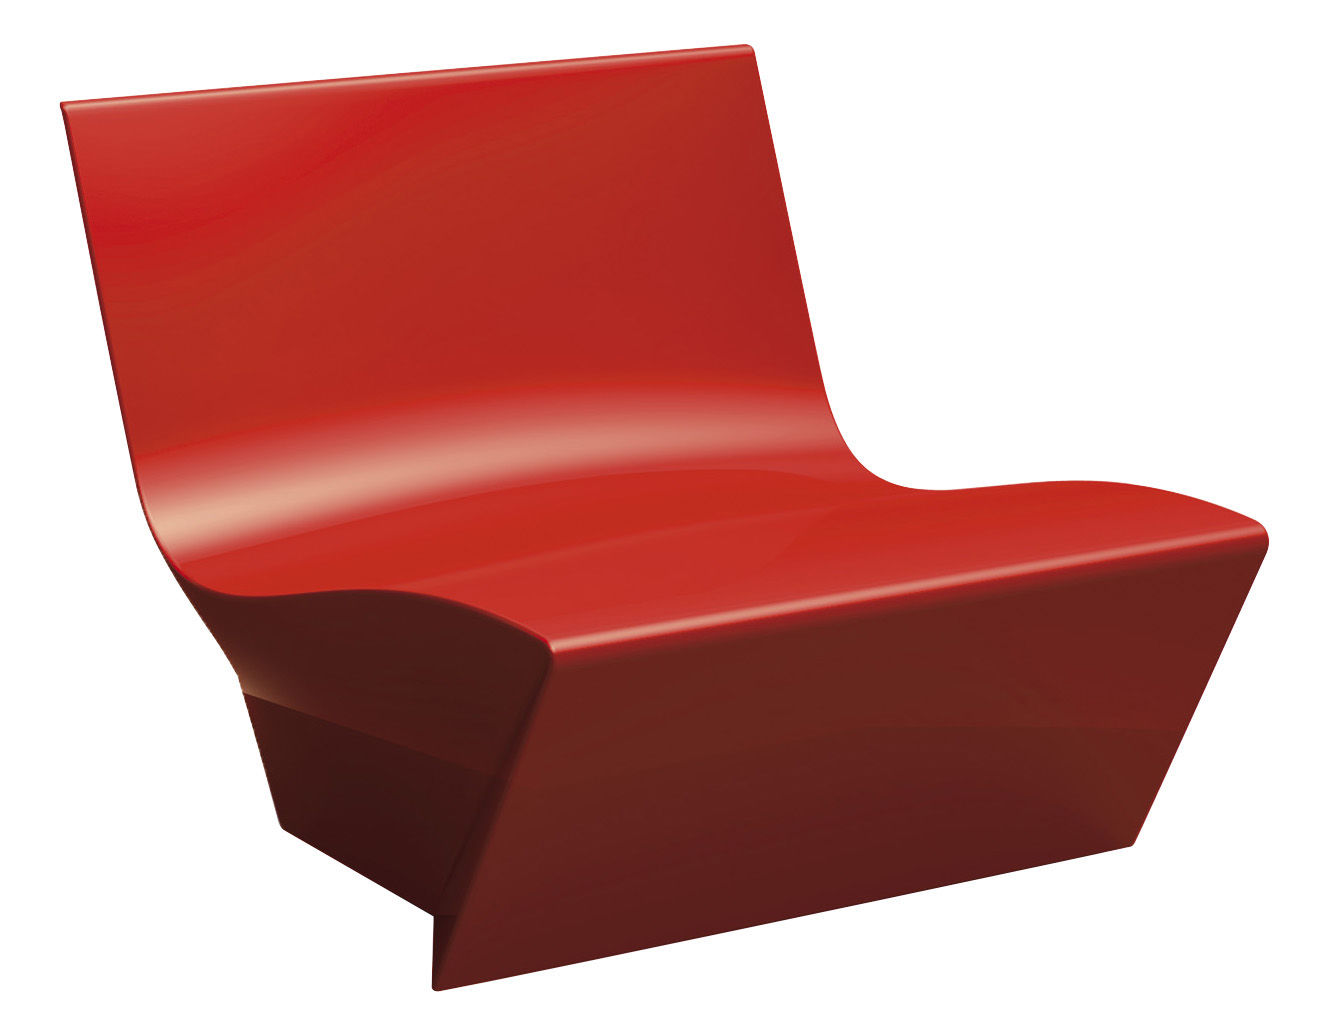 Furniture - Armchairs - Kami Ichi Low armchair - Lacquered version by Slide - Lacquered red -